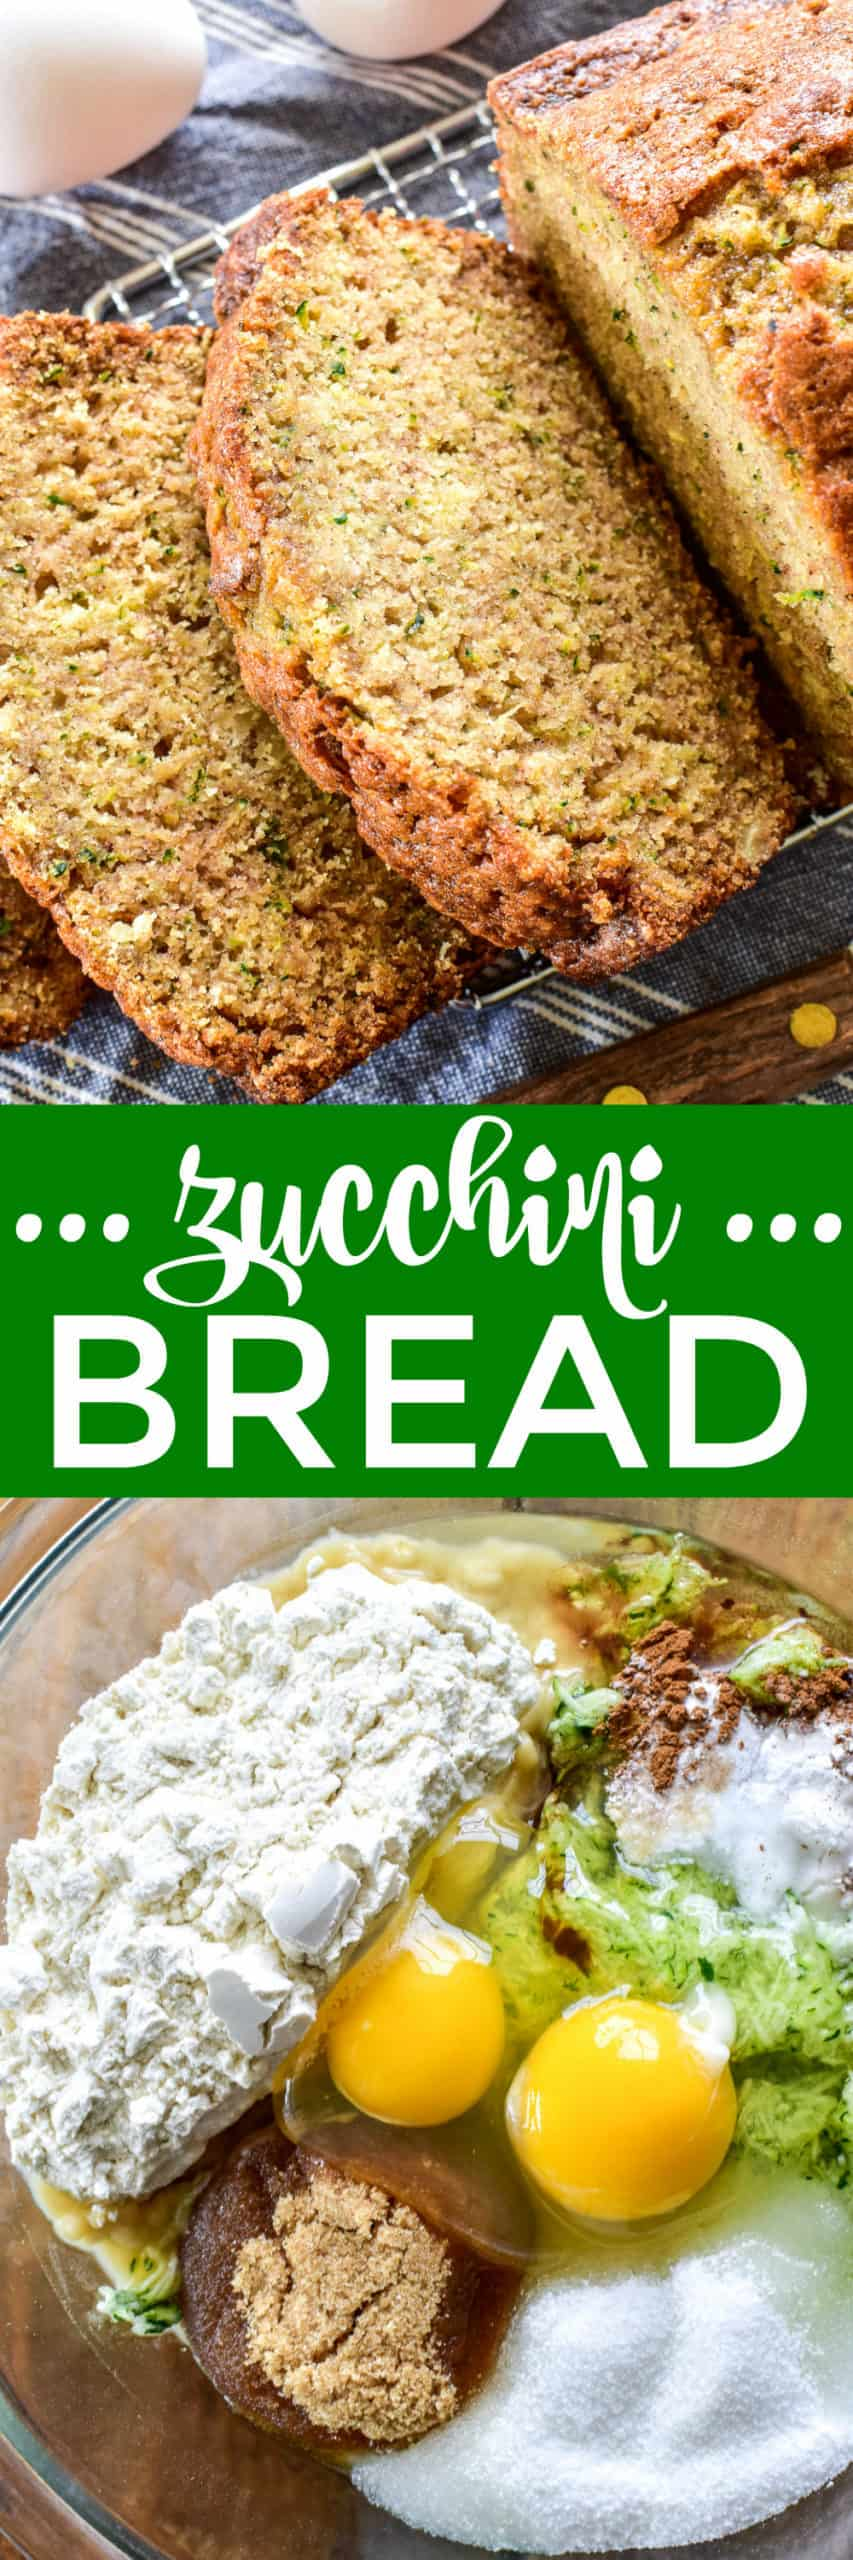 Collage image of Zucchini Bread loaf and ingredients